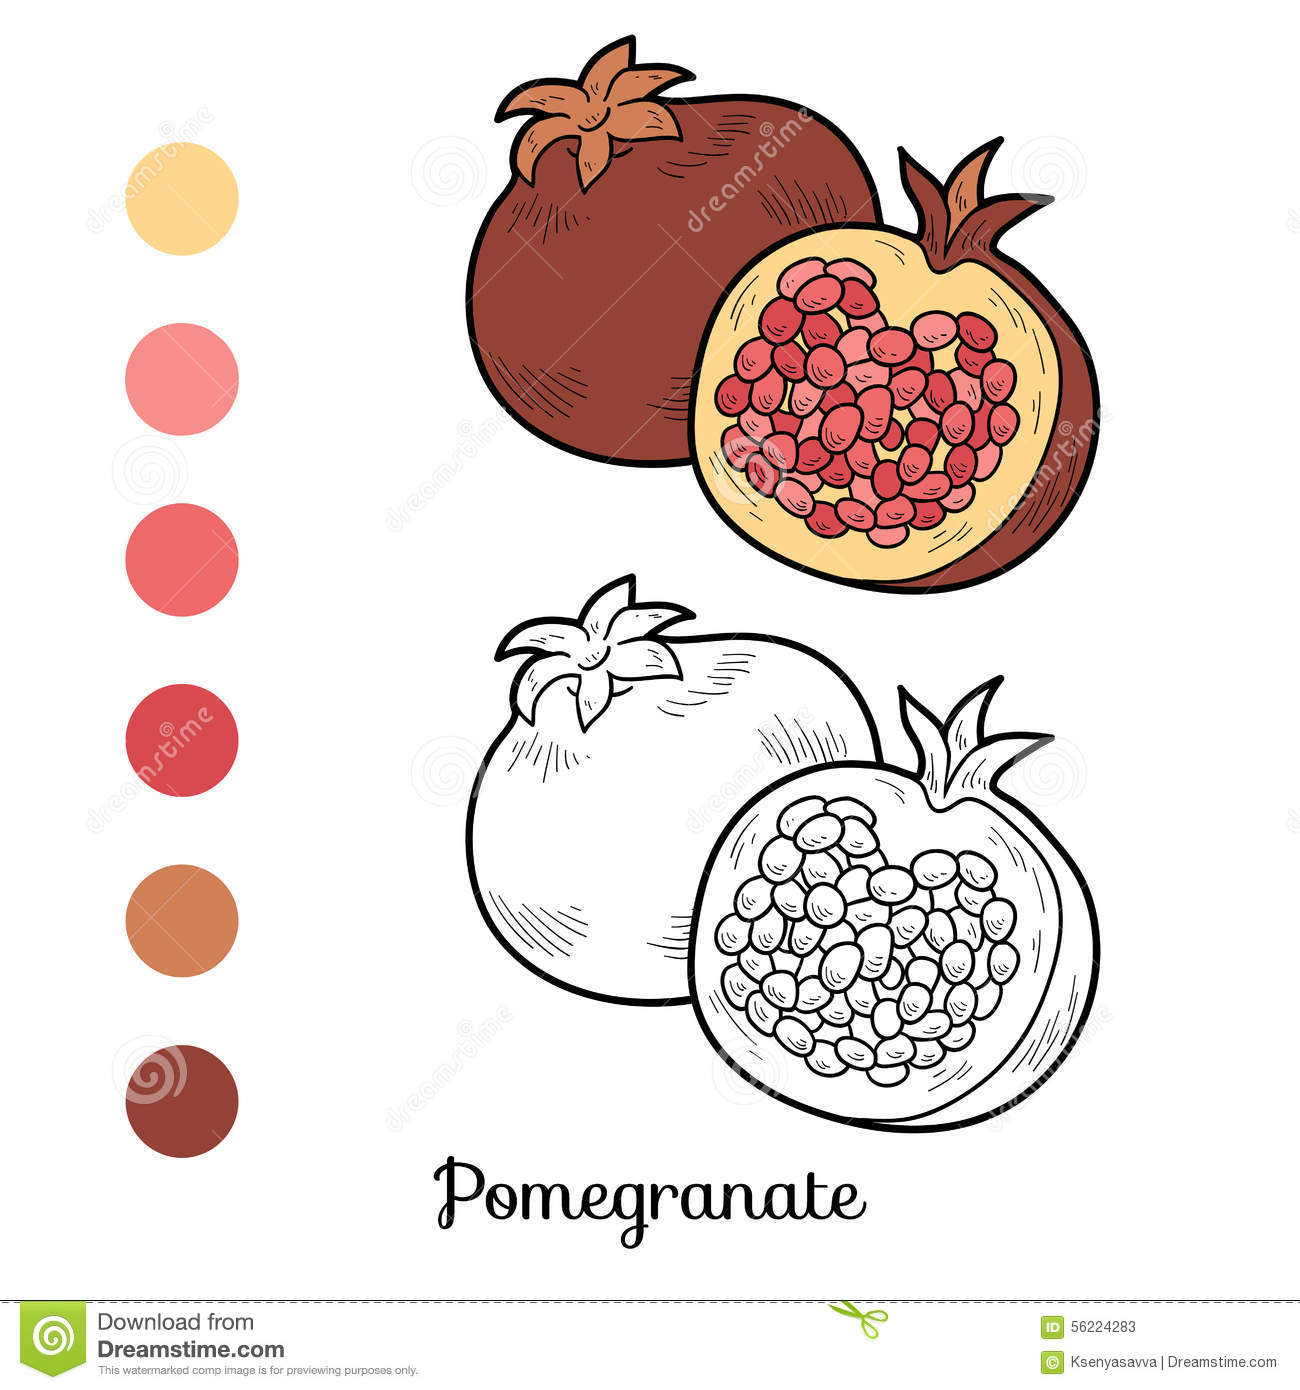 Cahier Coloriage Fruits.Livre De Coloriage Fruits Et Legumes Grenade Illustration De